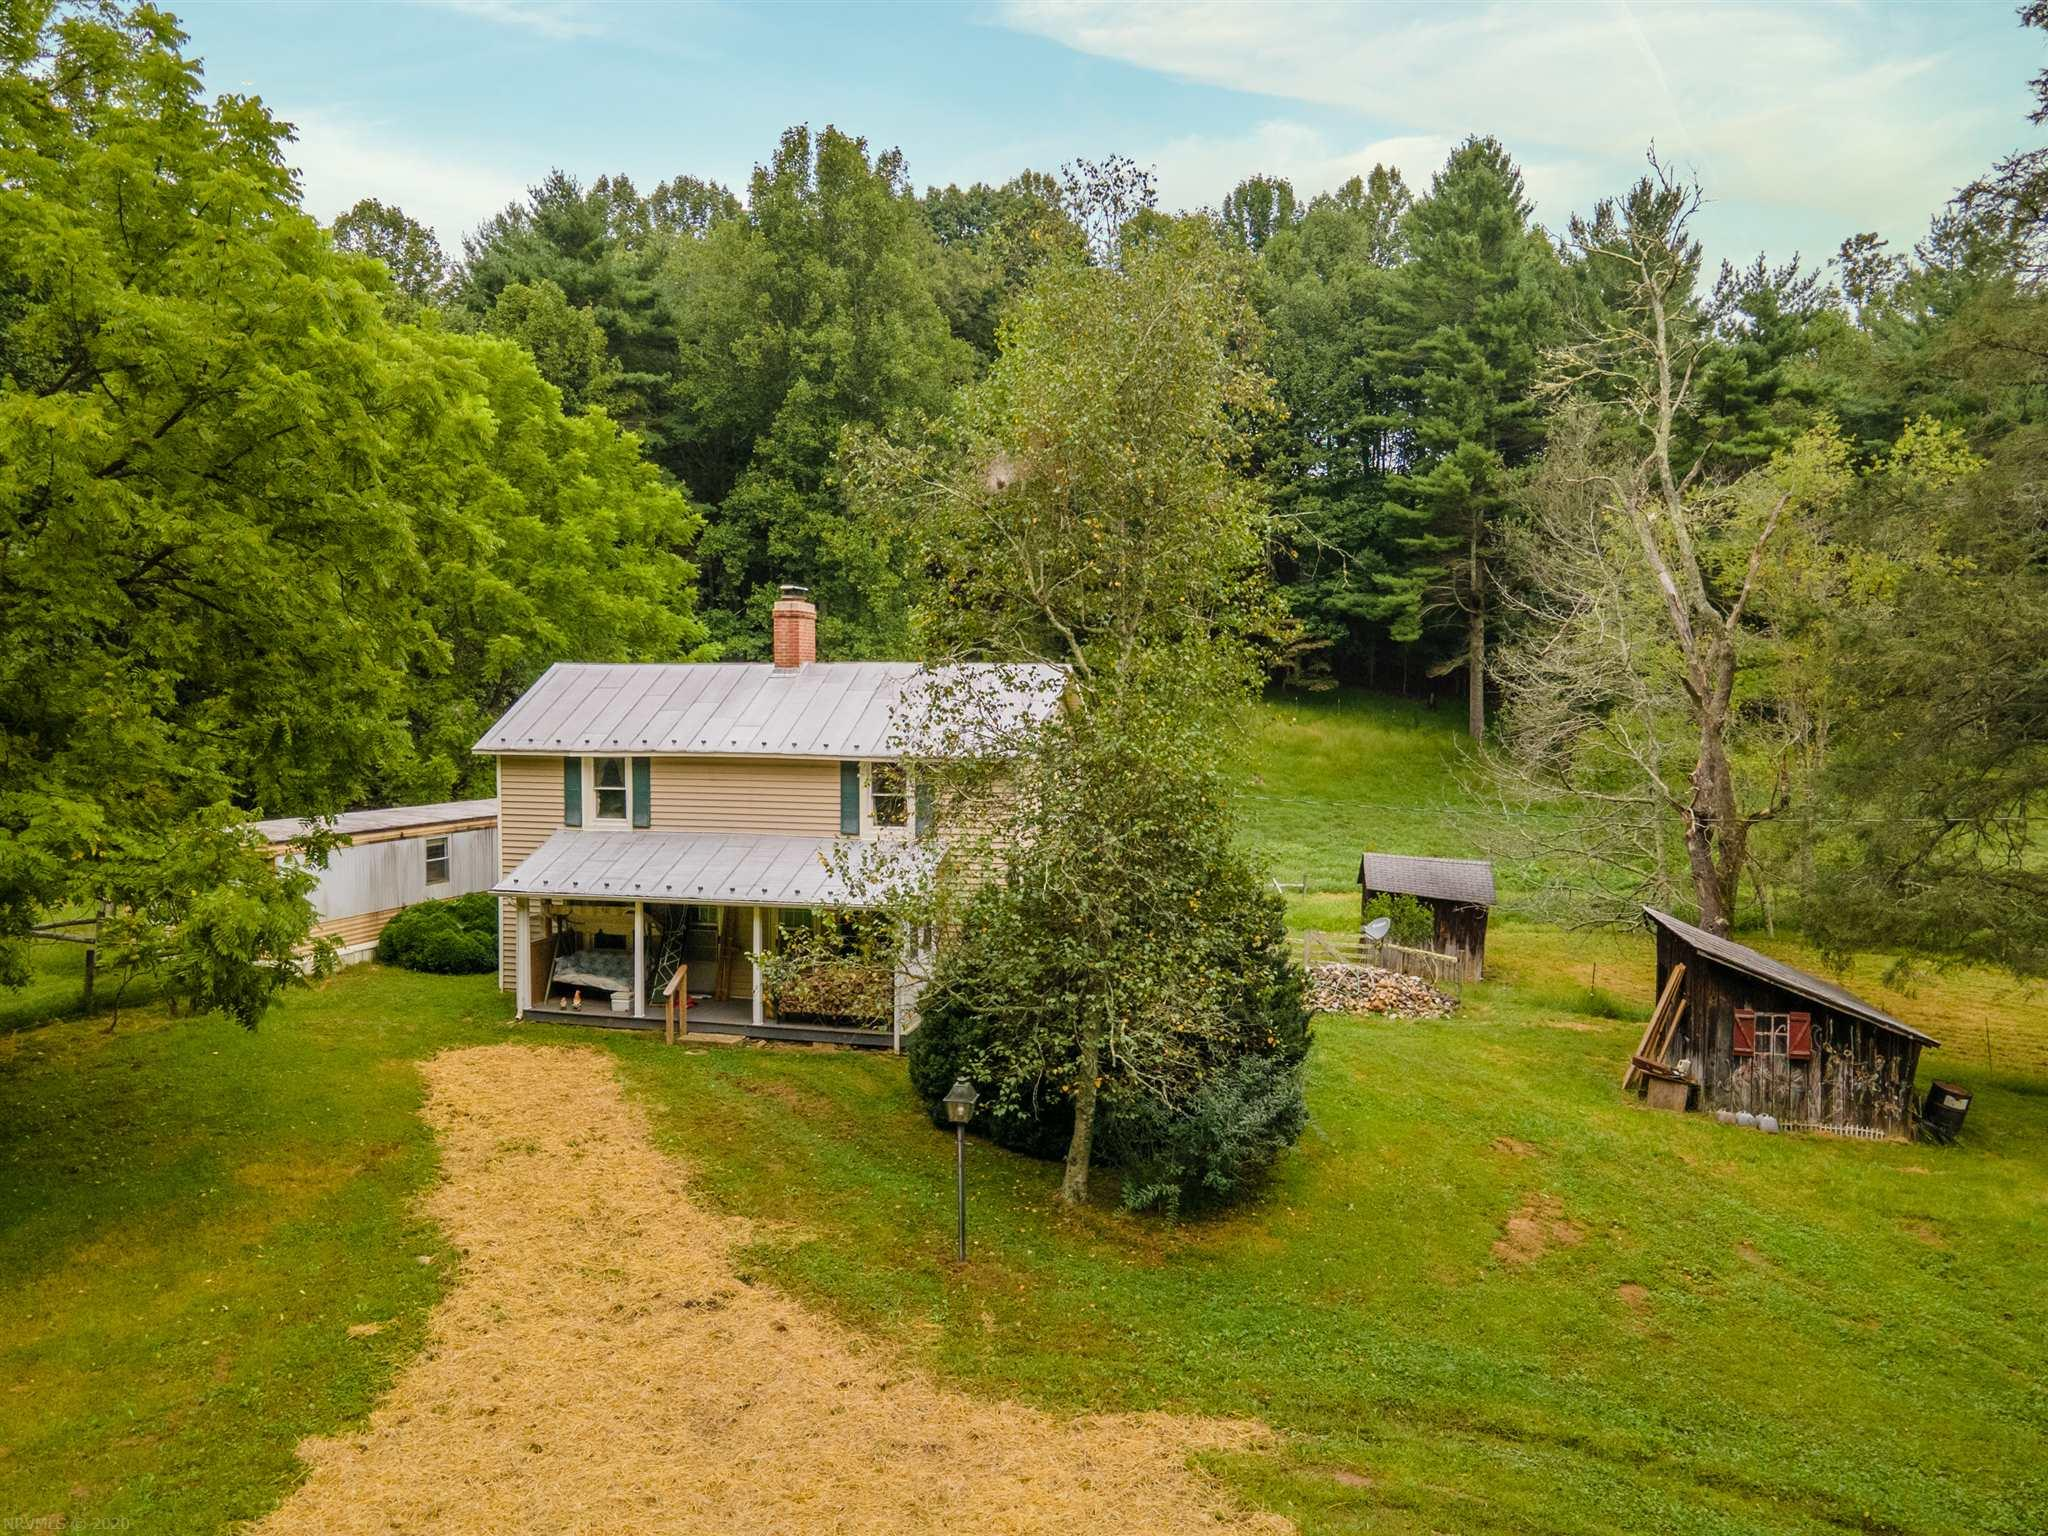 Picturesque setting with farmhouse, old barns, and outbuildings.  This farm has it all, creeks, views, substantial fencing, and mixture of pasture and woods.  Property is full of character and abundance of wildlife.  Just see the photos to understand the sheer beauty of this Floyd County Gem!